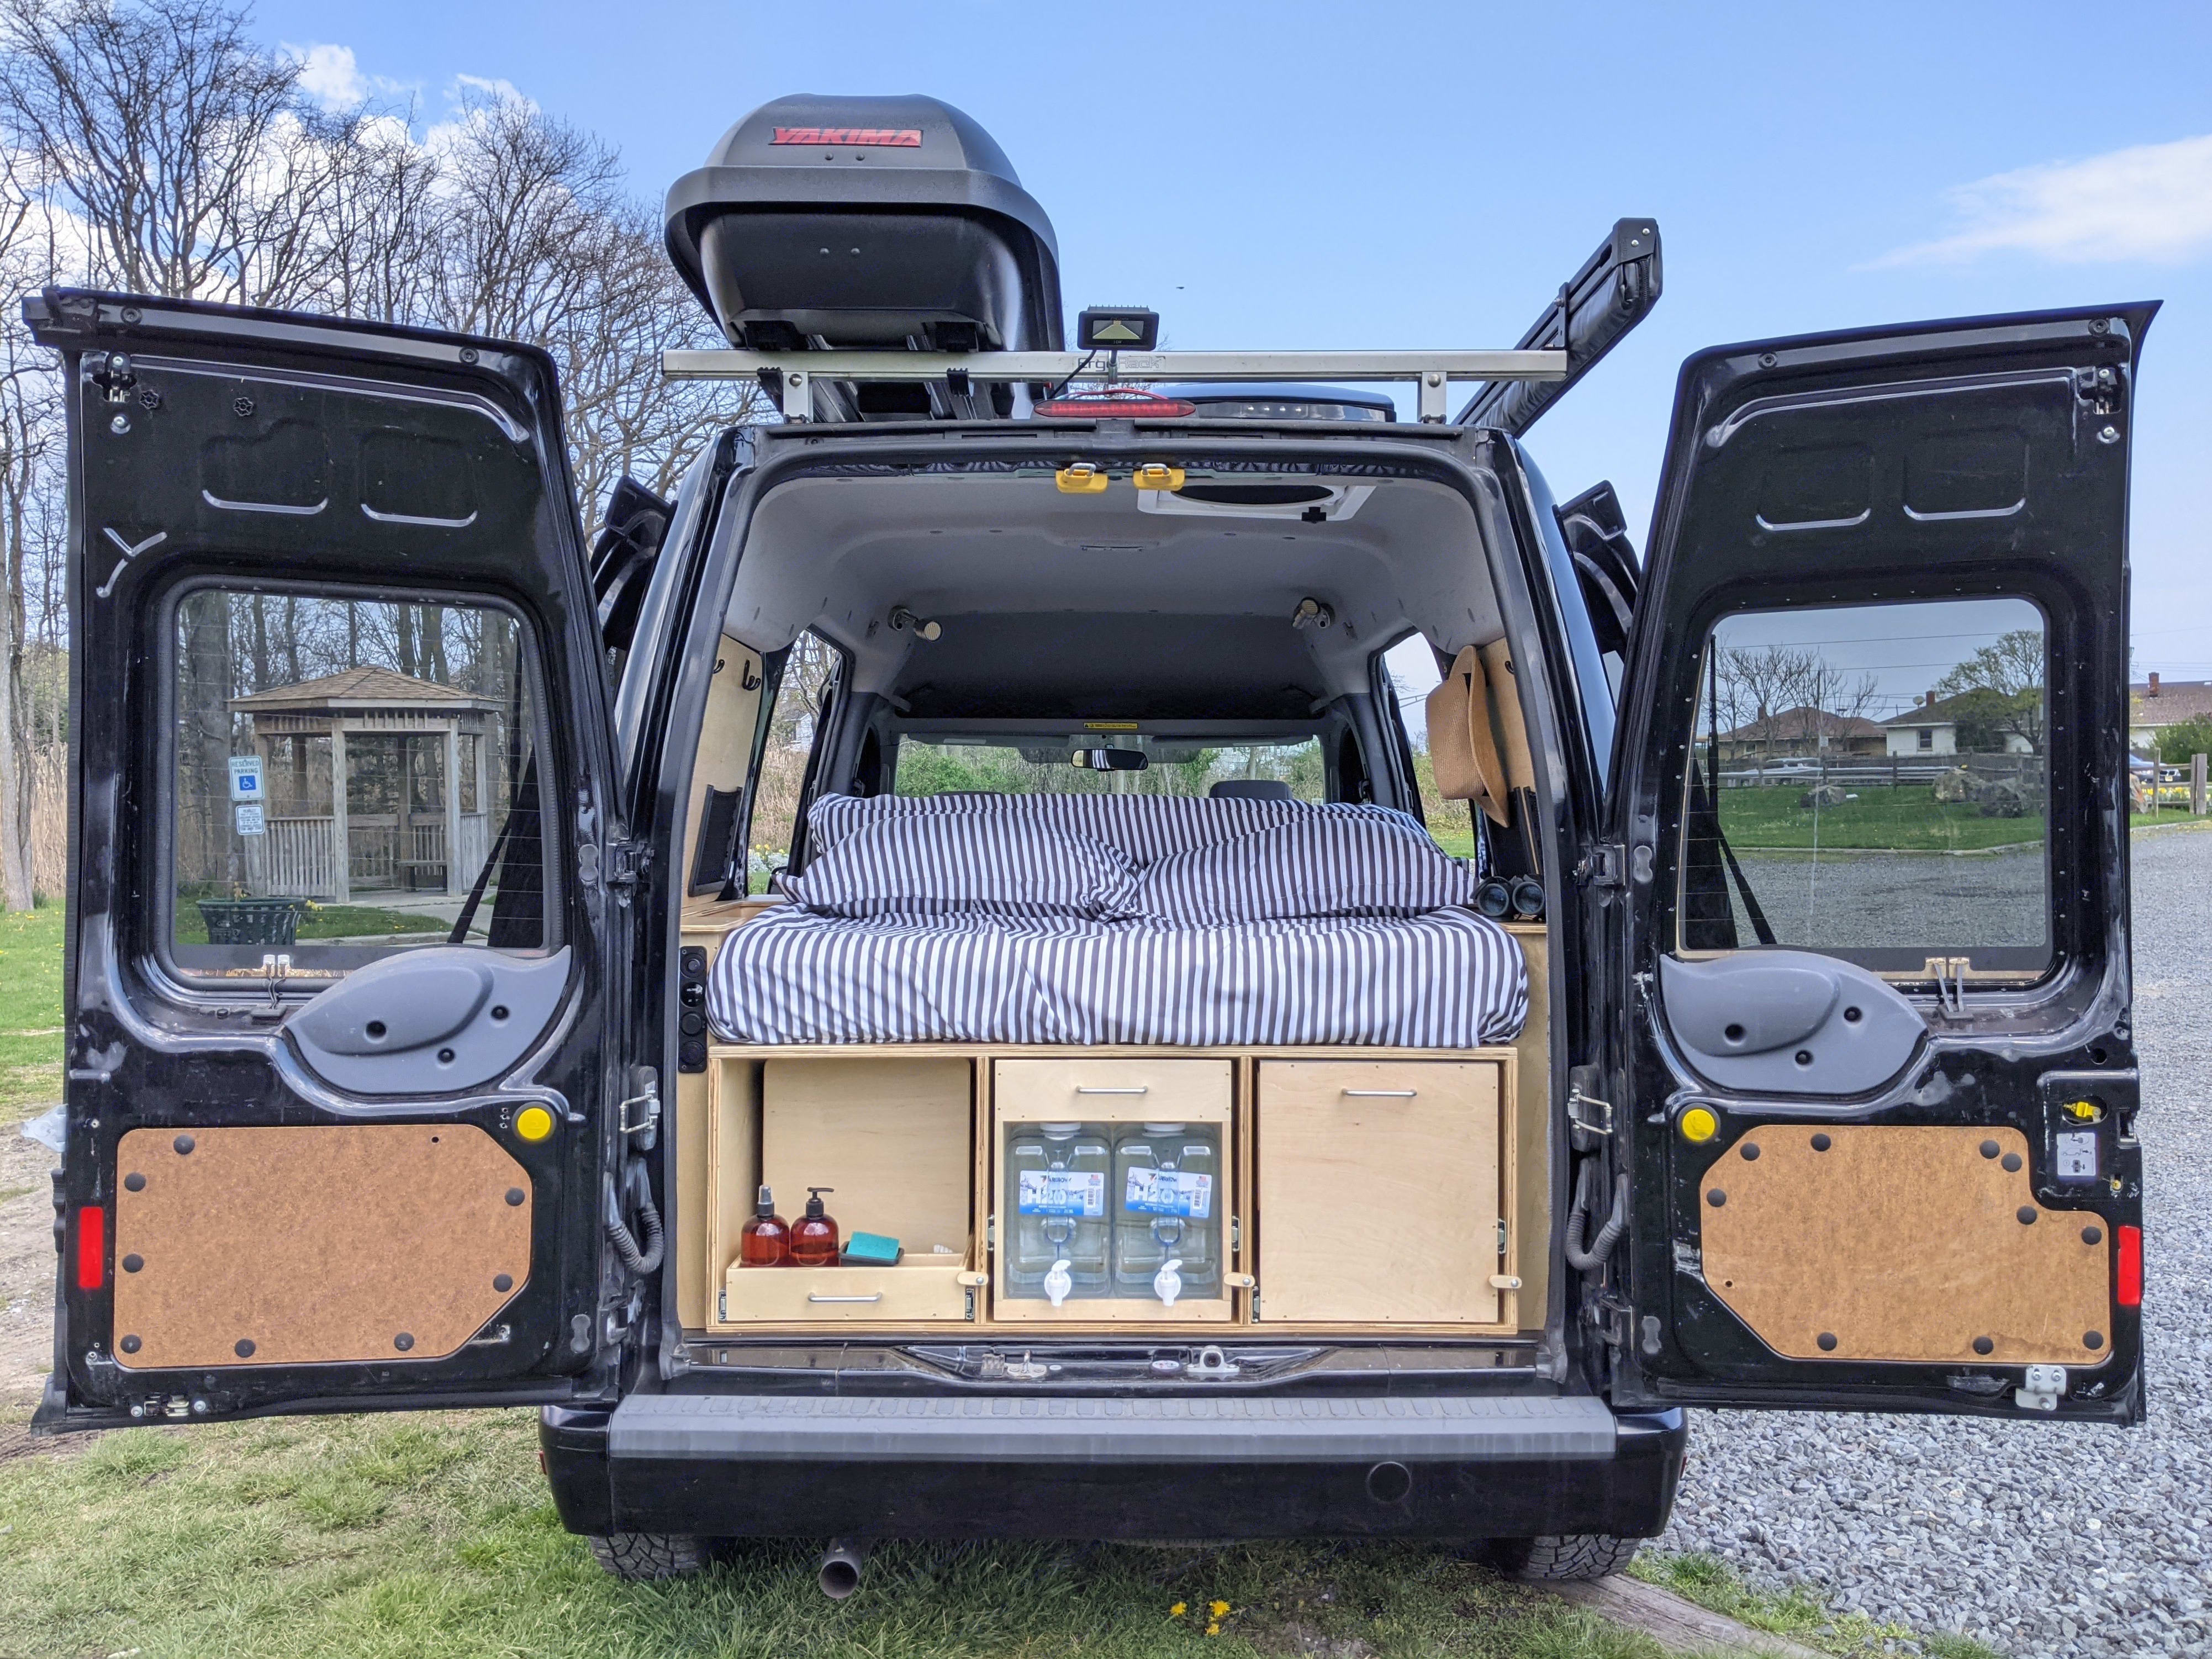 Don't let Ellie's petite size fool you! She has everything you need to elevate your camping experience: vehicle, queen sized bed, kitchen & storage. Ford Transit Connect 2012